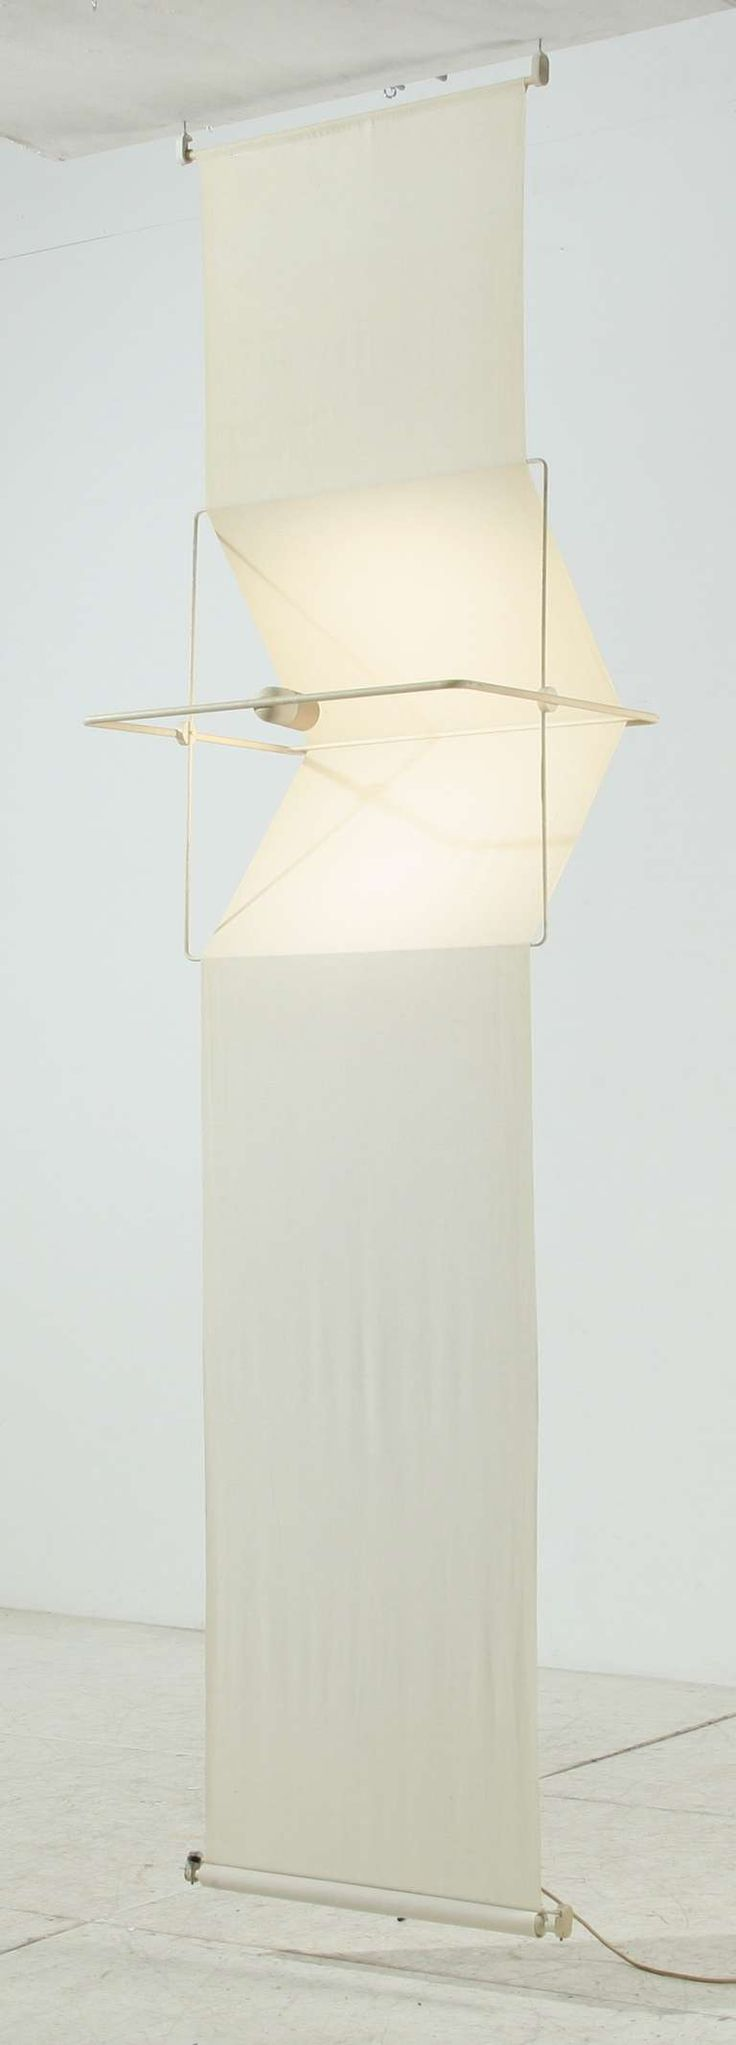 Rare 'Quinta' Lamp and Room Divider by Silvio Coppola, Artemide, Italy, 1970s